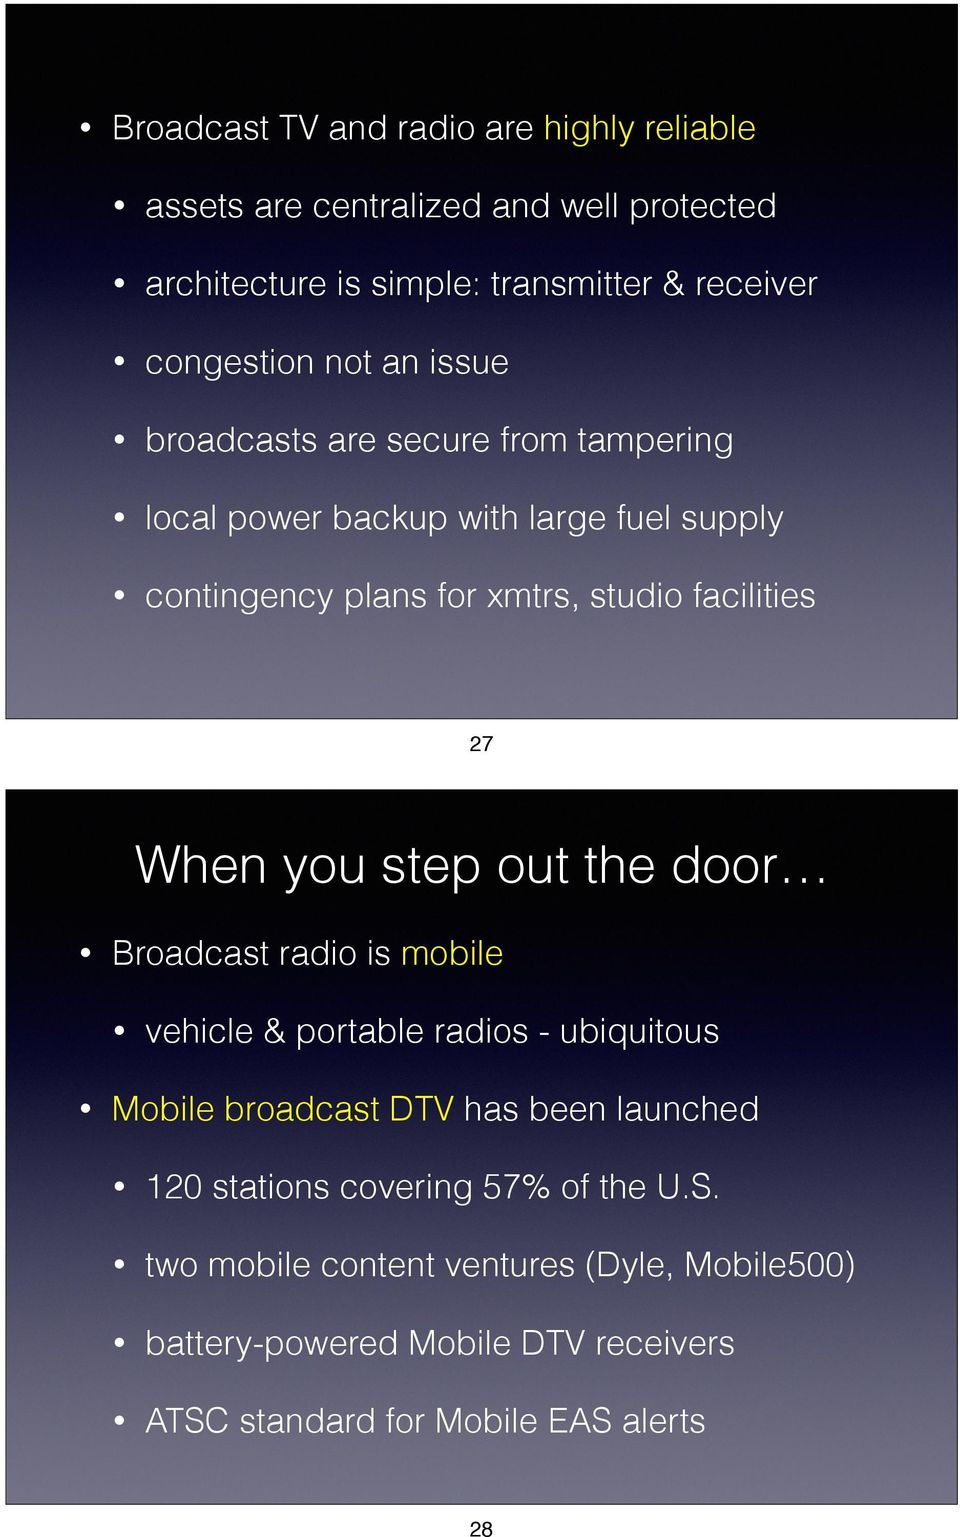 When you step out the door Broadcast radio is mobile vehicle & portable radios - ubiquitous Mobile broadcast DTV has been launched 120 stations